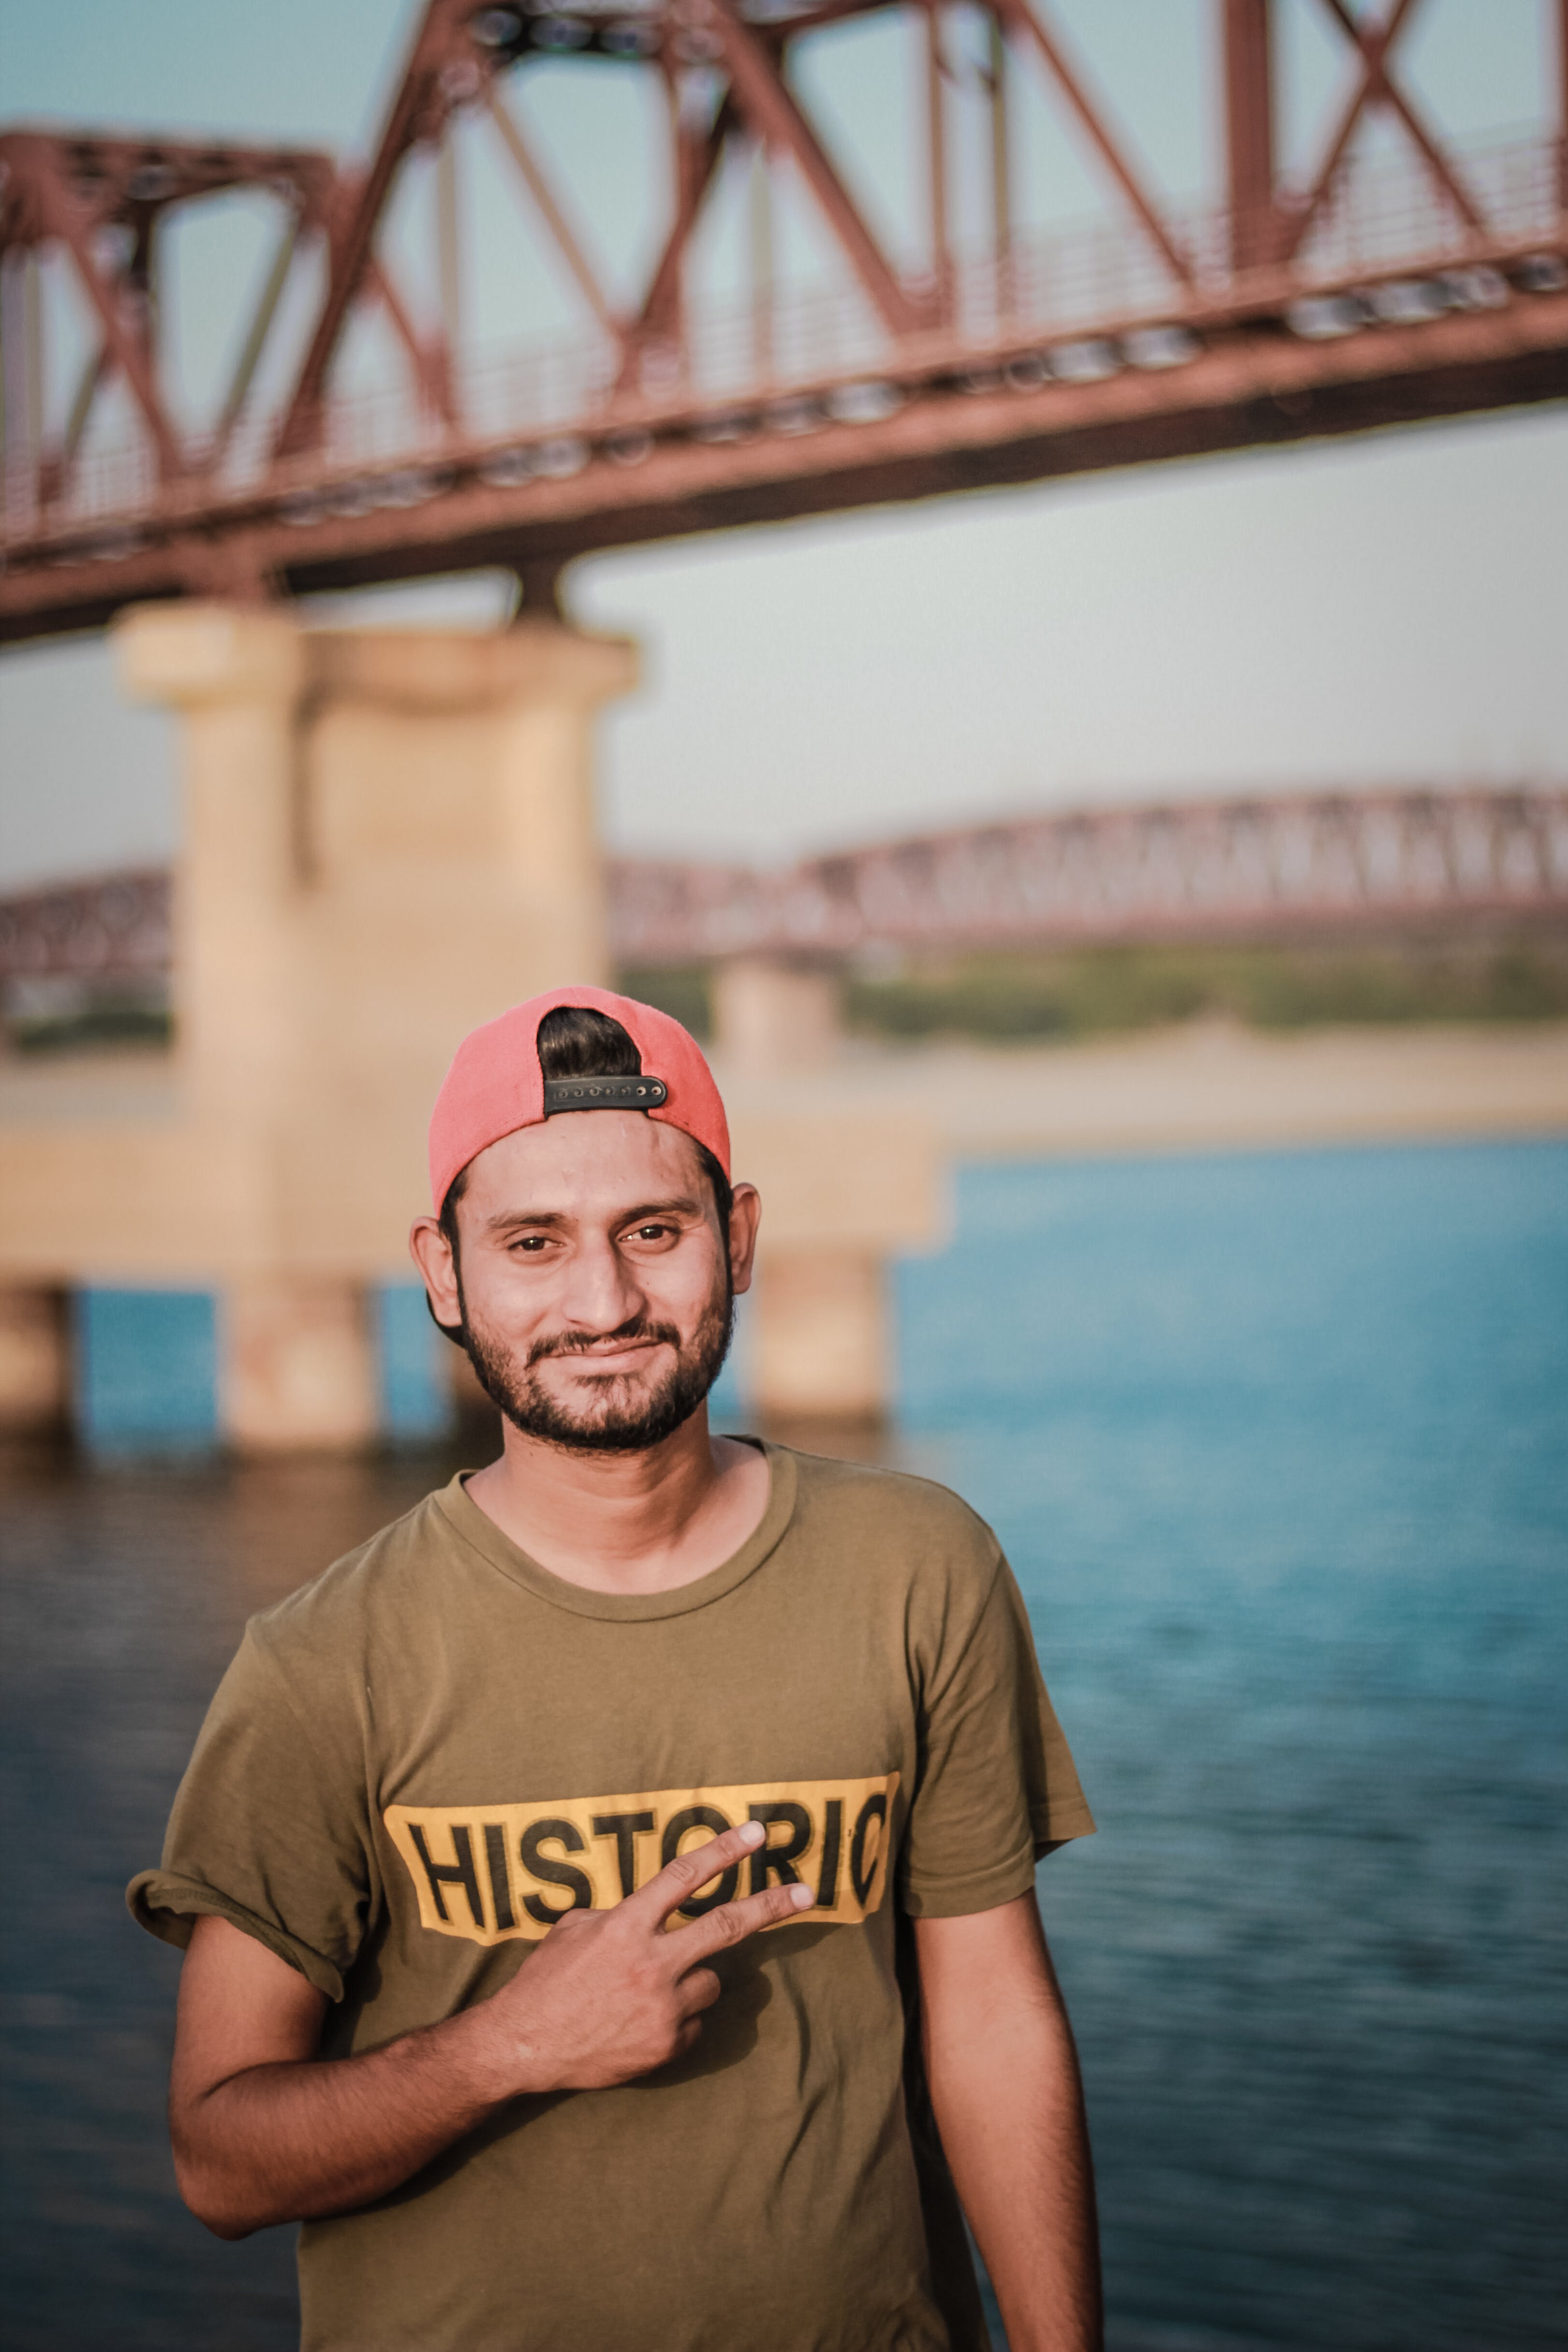 Man Wearing Gray Historic-printed T-shirt and Red Snapback Cap Taking Photo Beside Body of Water